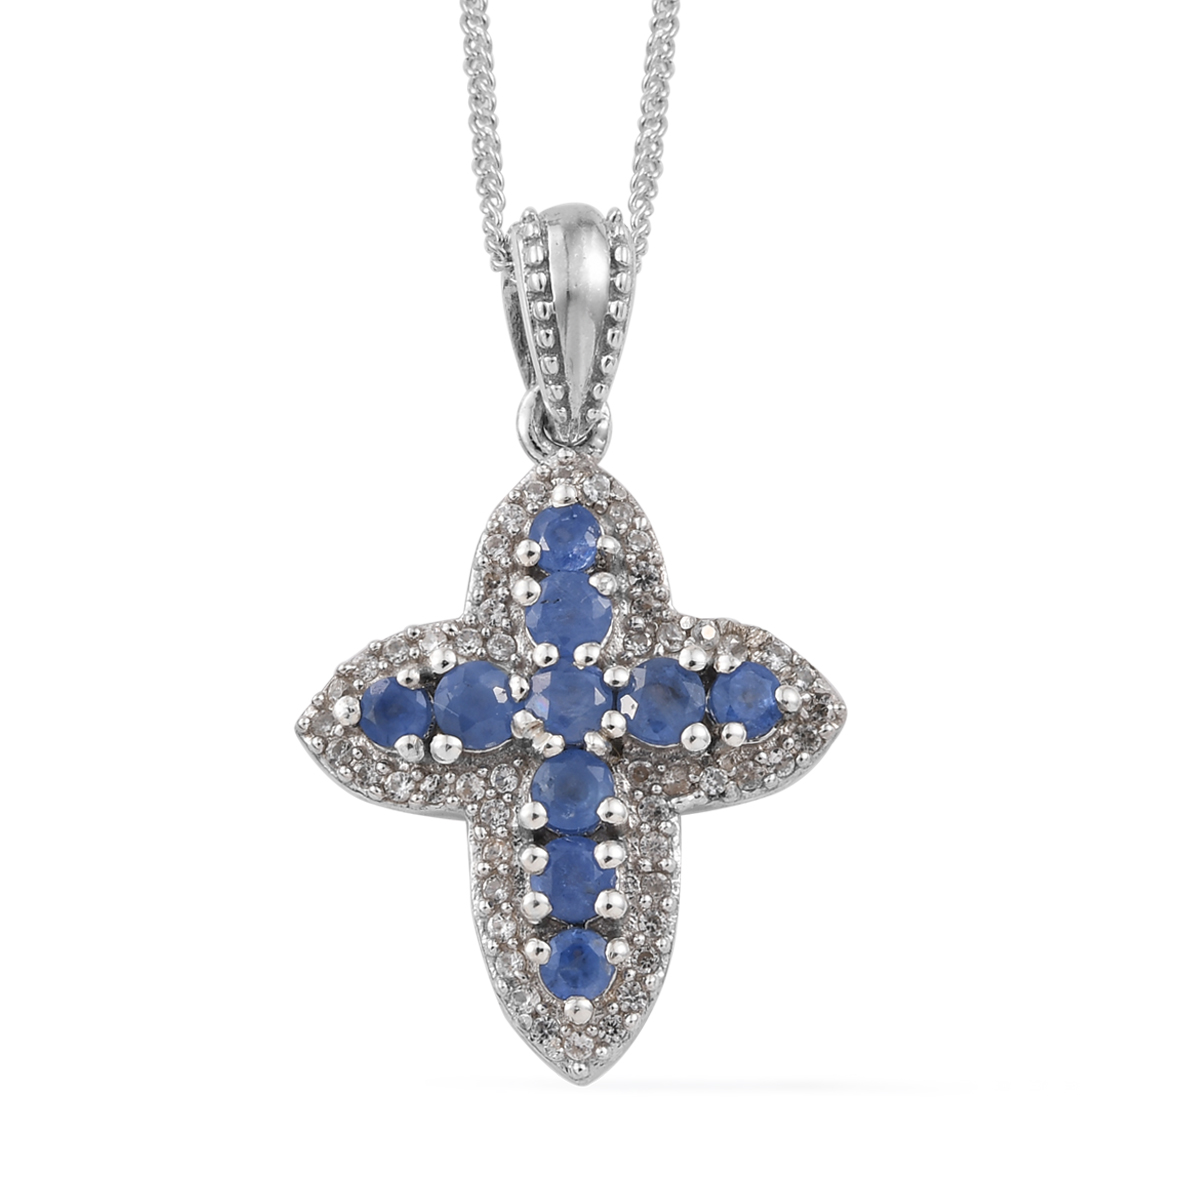 78f134031 Burmese Blue Sapphire, Cambodian Zircon Cross Pendant Necklace (20 in) in  Platinum Over Sterling Silver 1.18 ctw | Shop LC